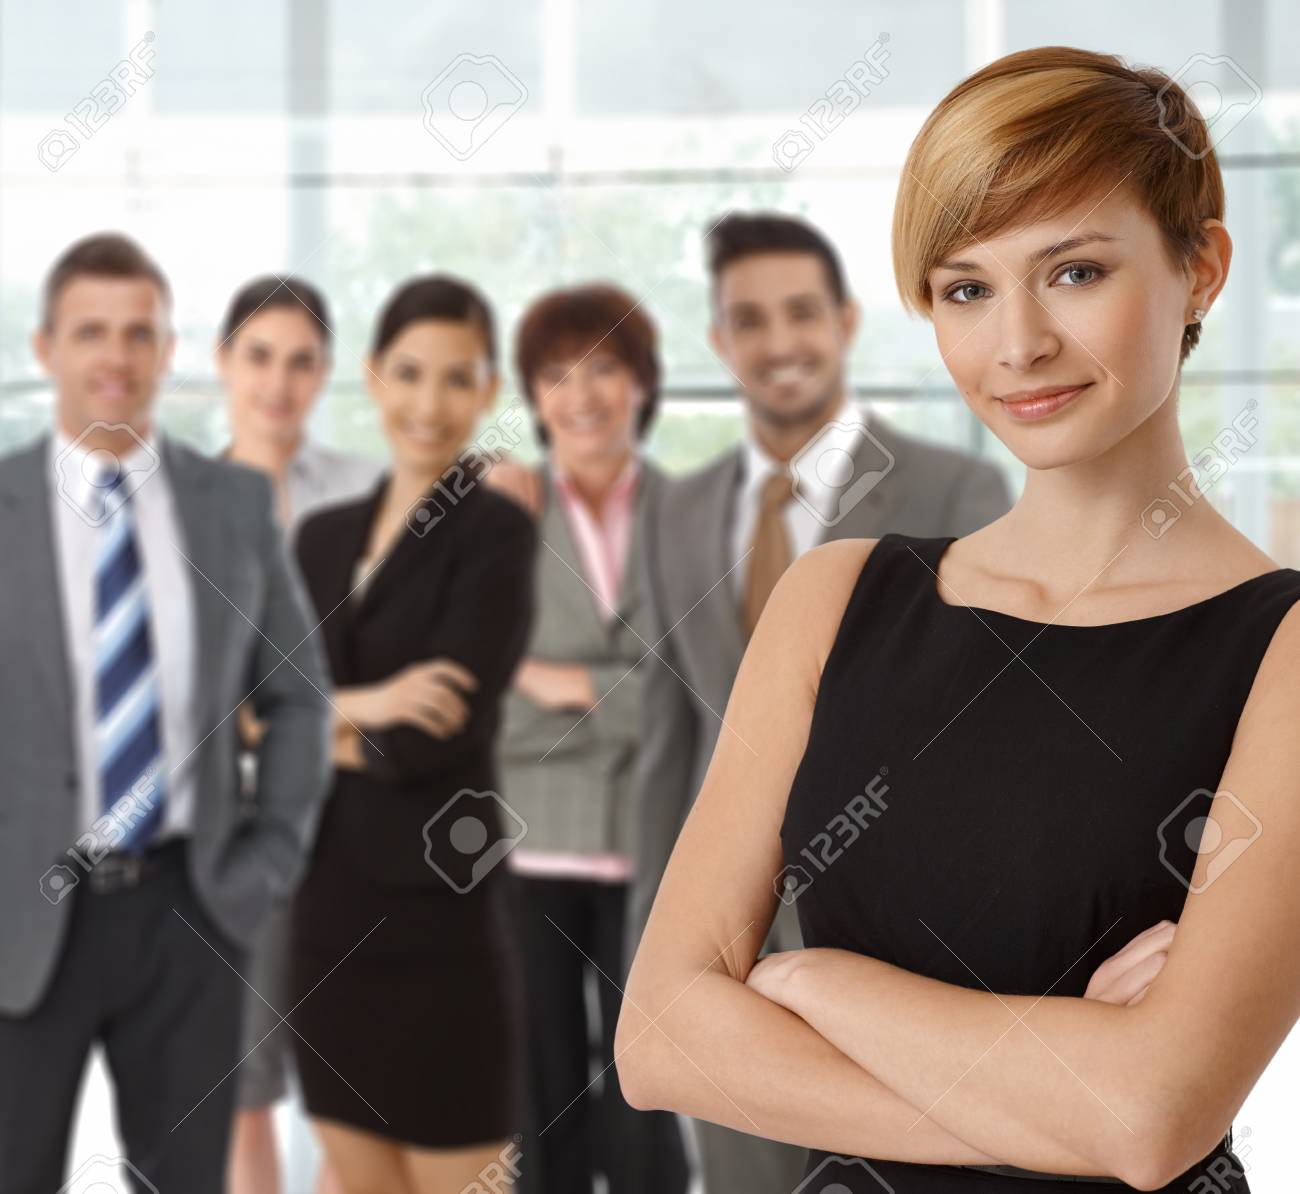 Beautiful young businesswoman smiling with business team in background. Stock Photo - 23527926